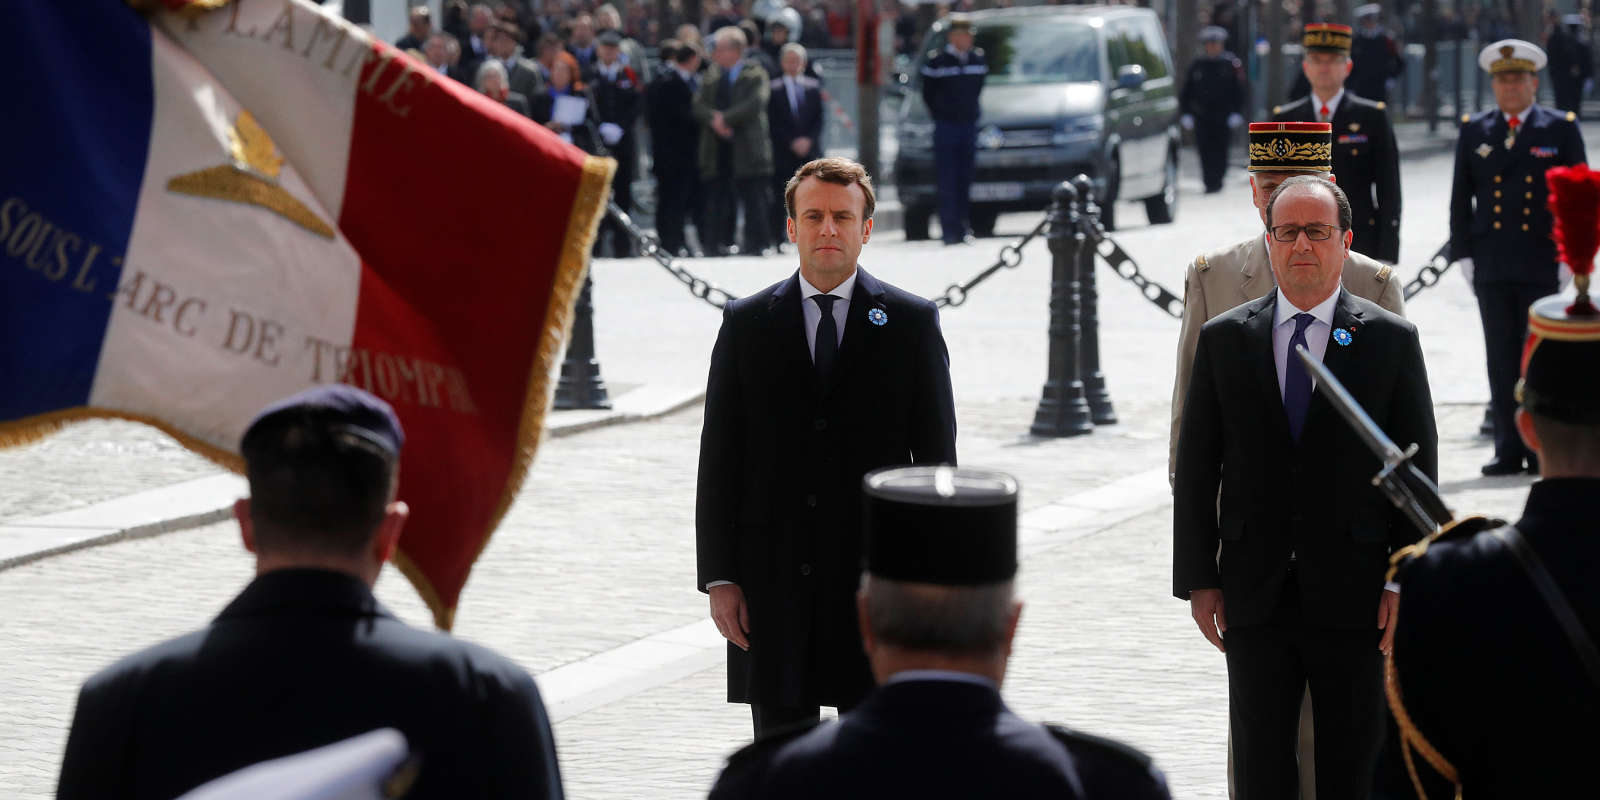 Outgoing French President Francois Hollande (R) and President-elect Emmanuel Macron attend attend a ceremony to mark the end of World War II at the Tomb of the Unknown Soldier at the Arc de Triomphe in Paris, France, May 8, 2017. REUTERS/Philippe Wojazer